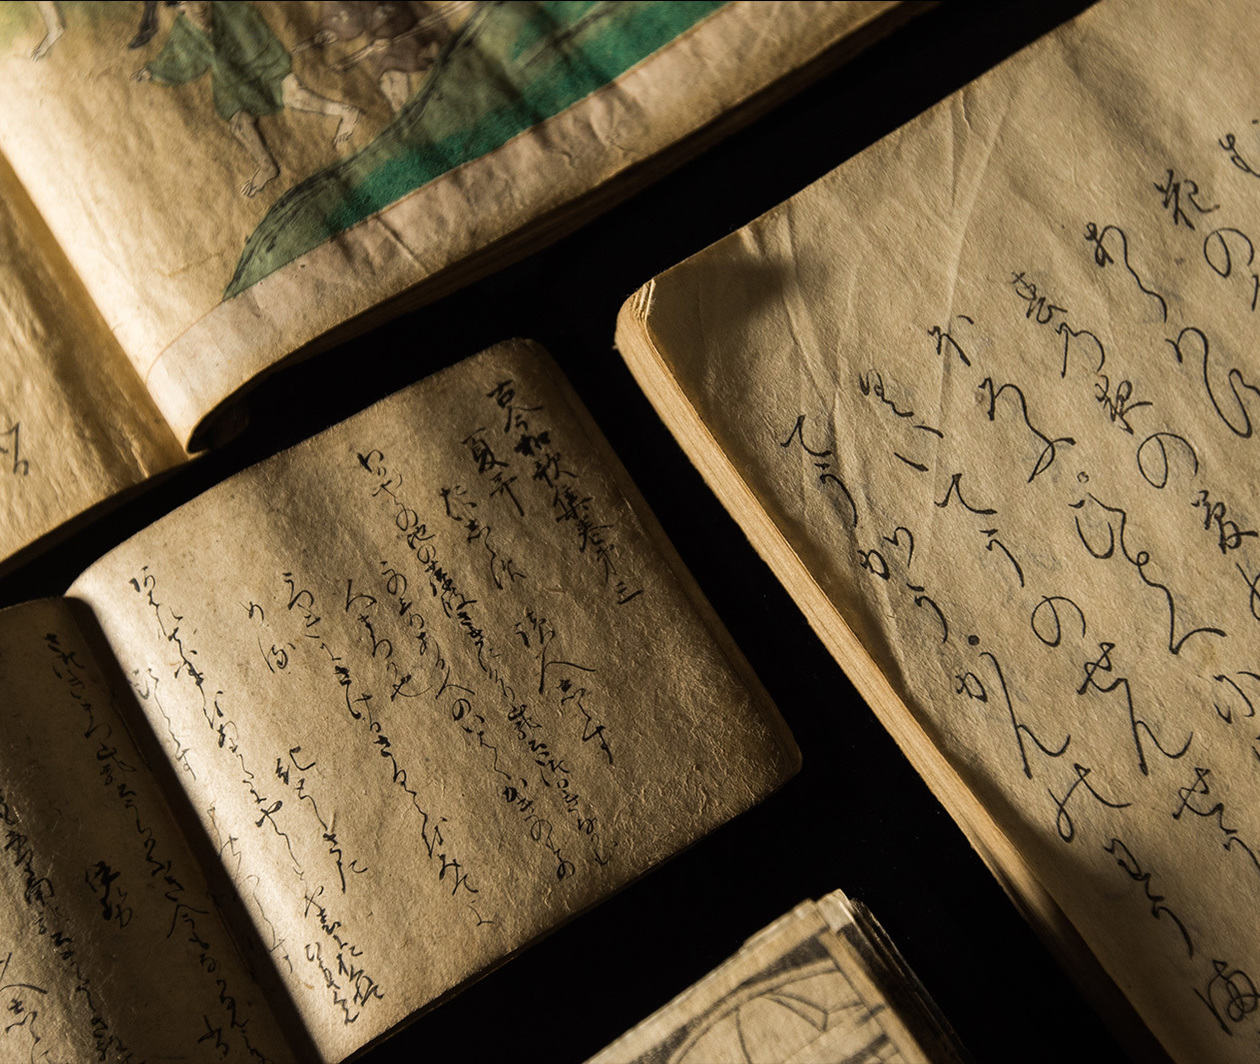 Japanese Culture Through Rare Books Online Course Futurelearn